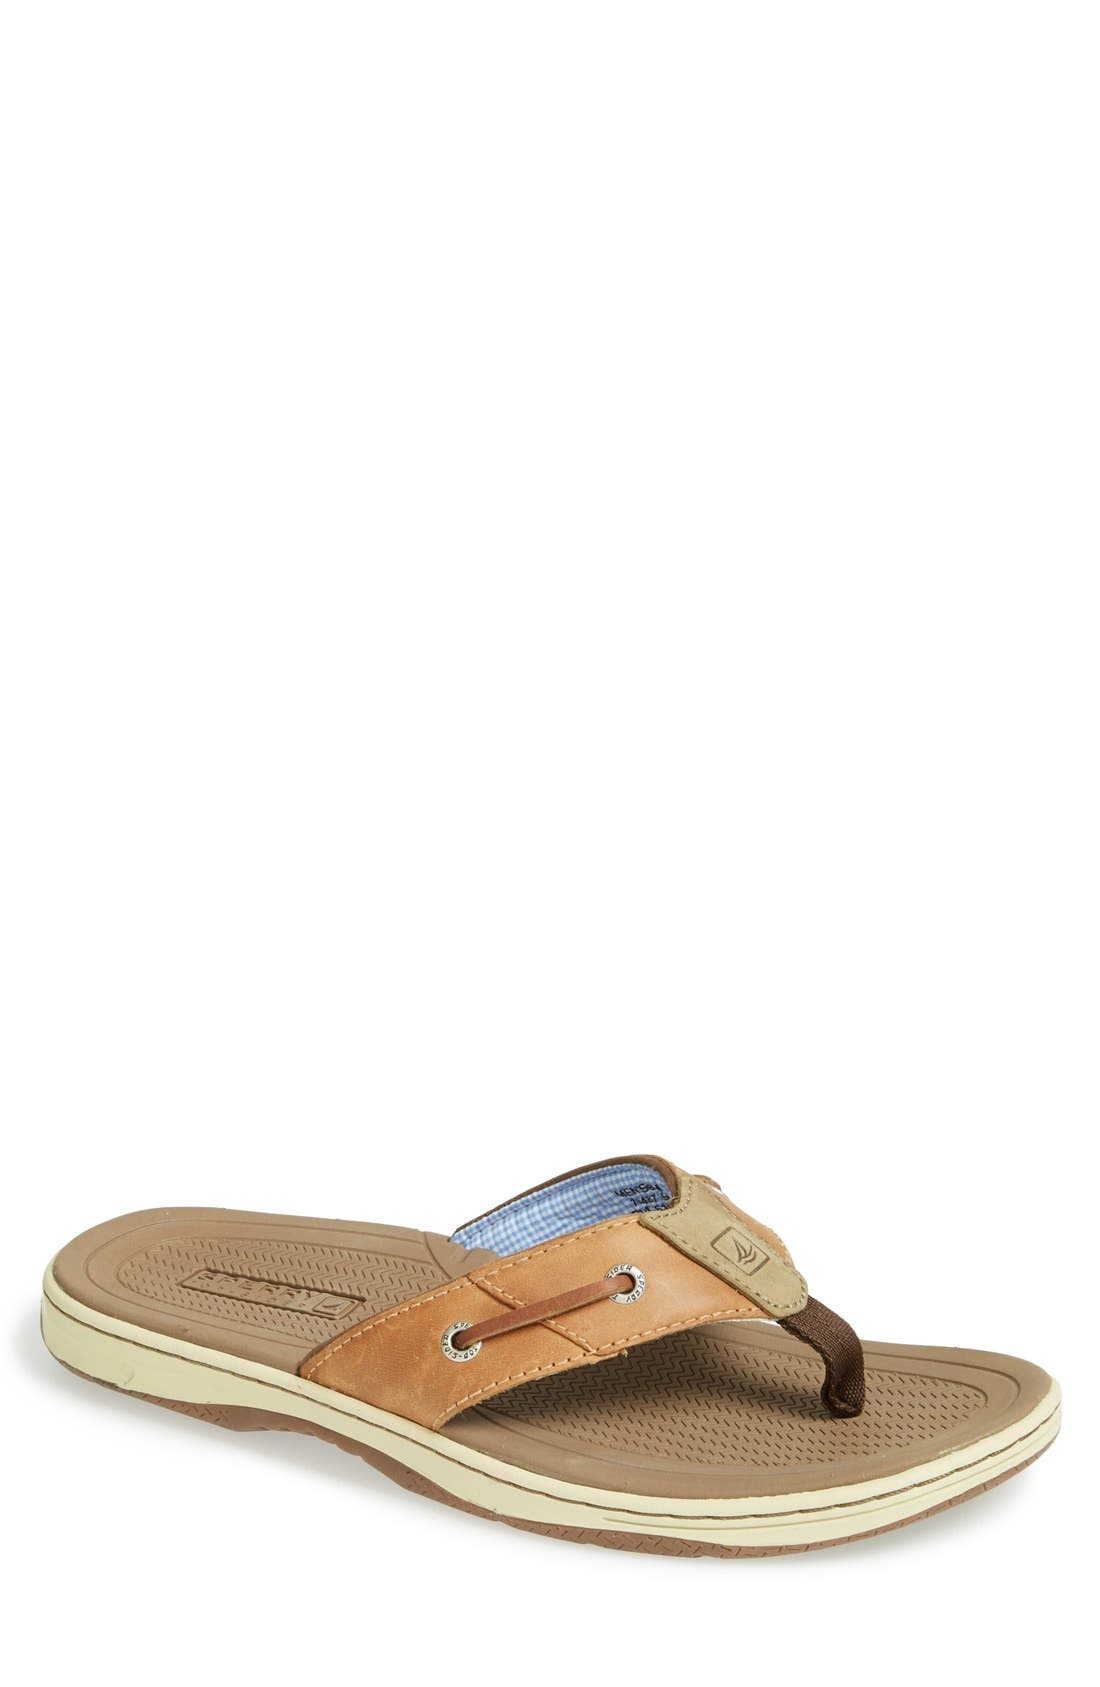 5605f57ab83 sperry sandals for sale   OFF52% Discounts